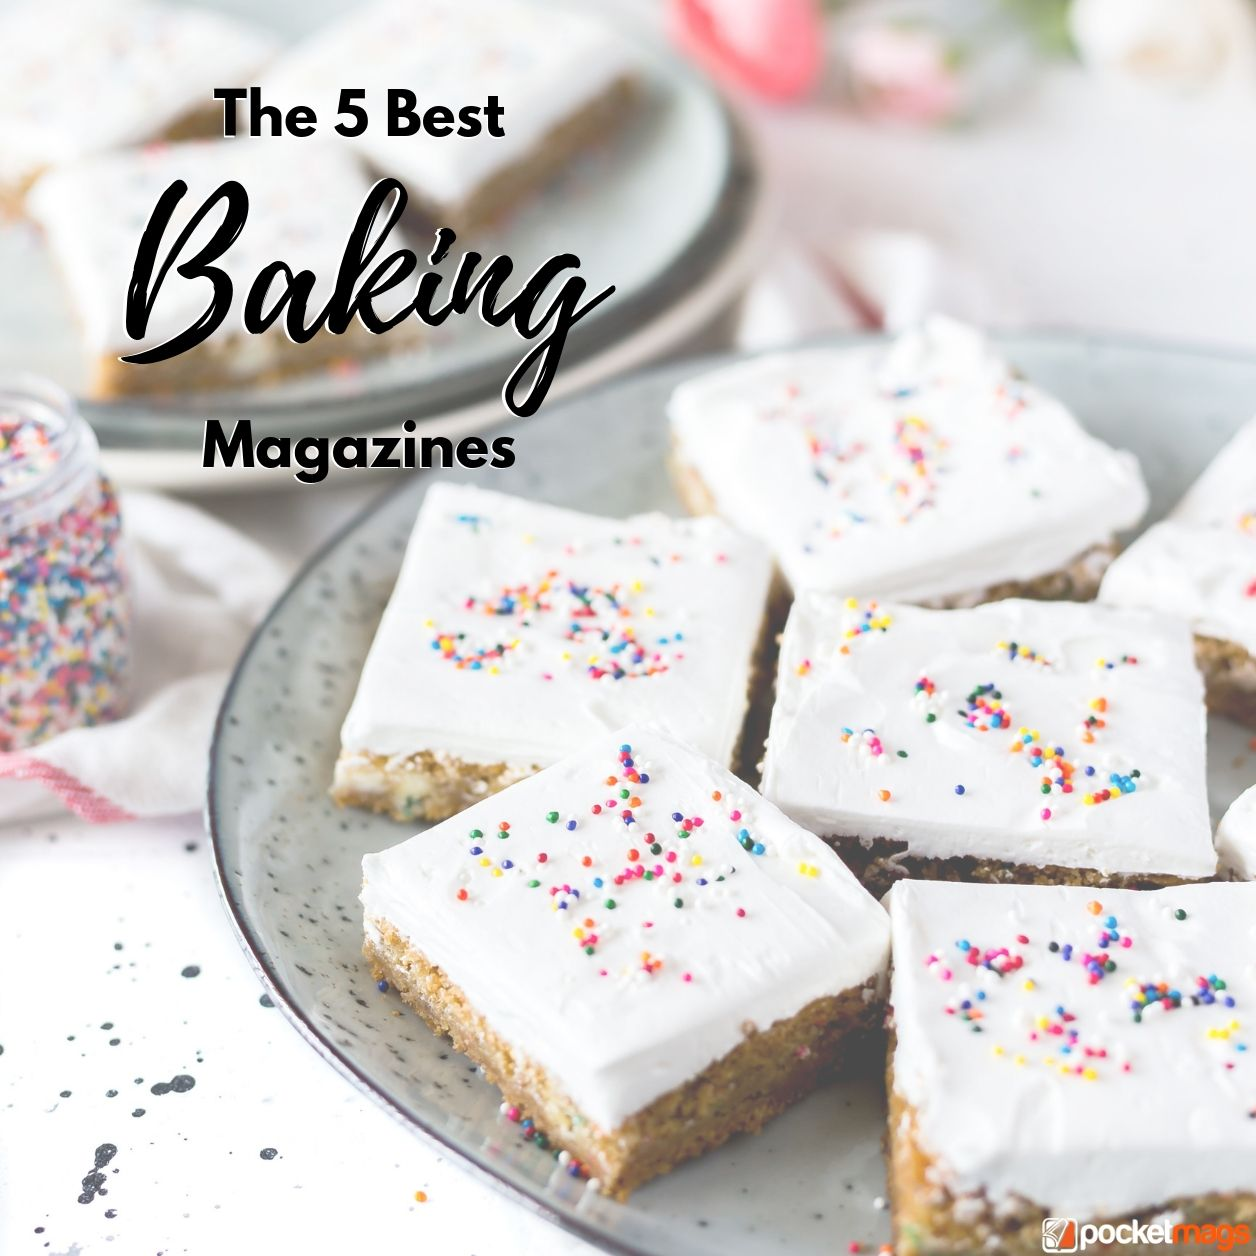 The 5 Best Baking Magazines